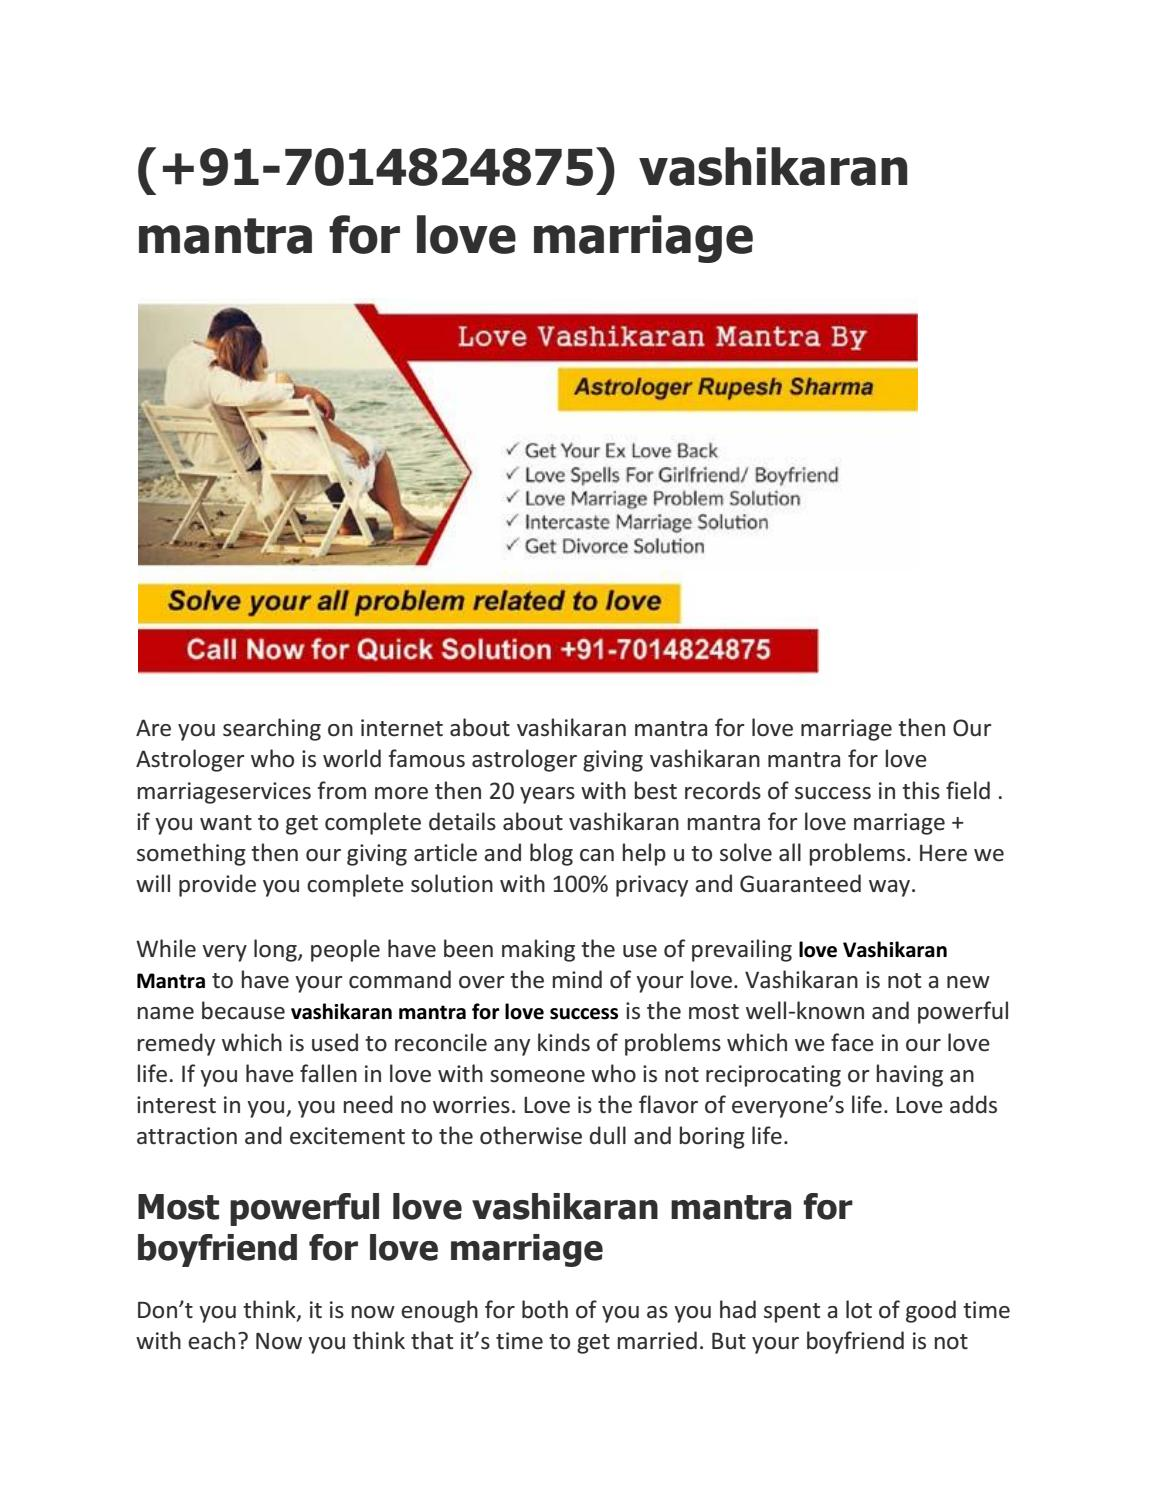 vashikaran mantra for love love mantra +91-7014824875 by